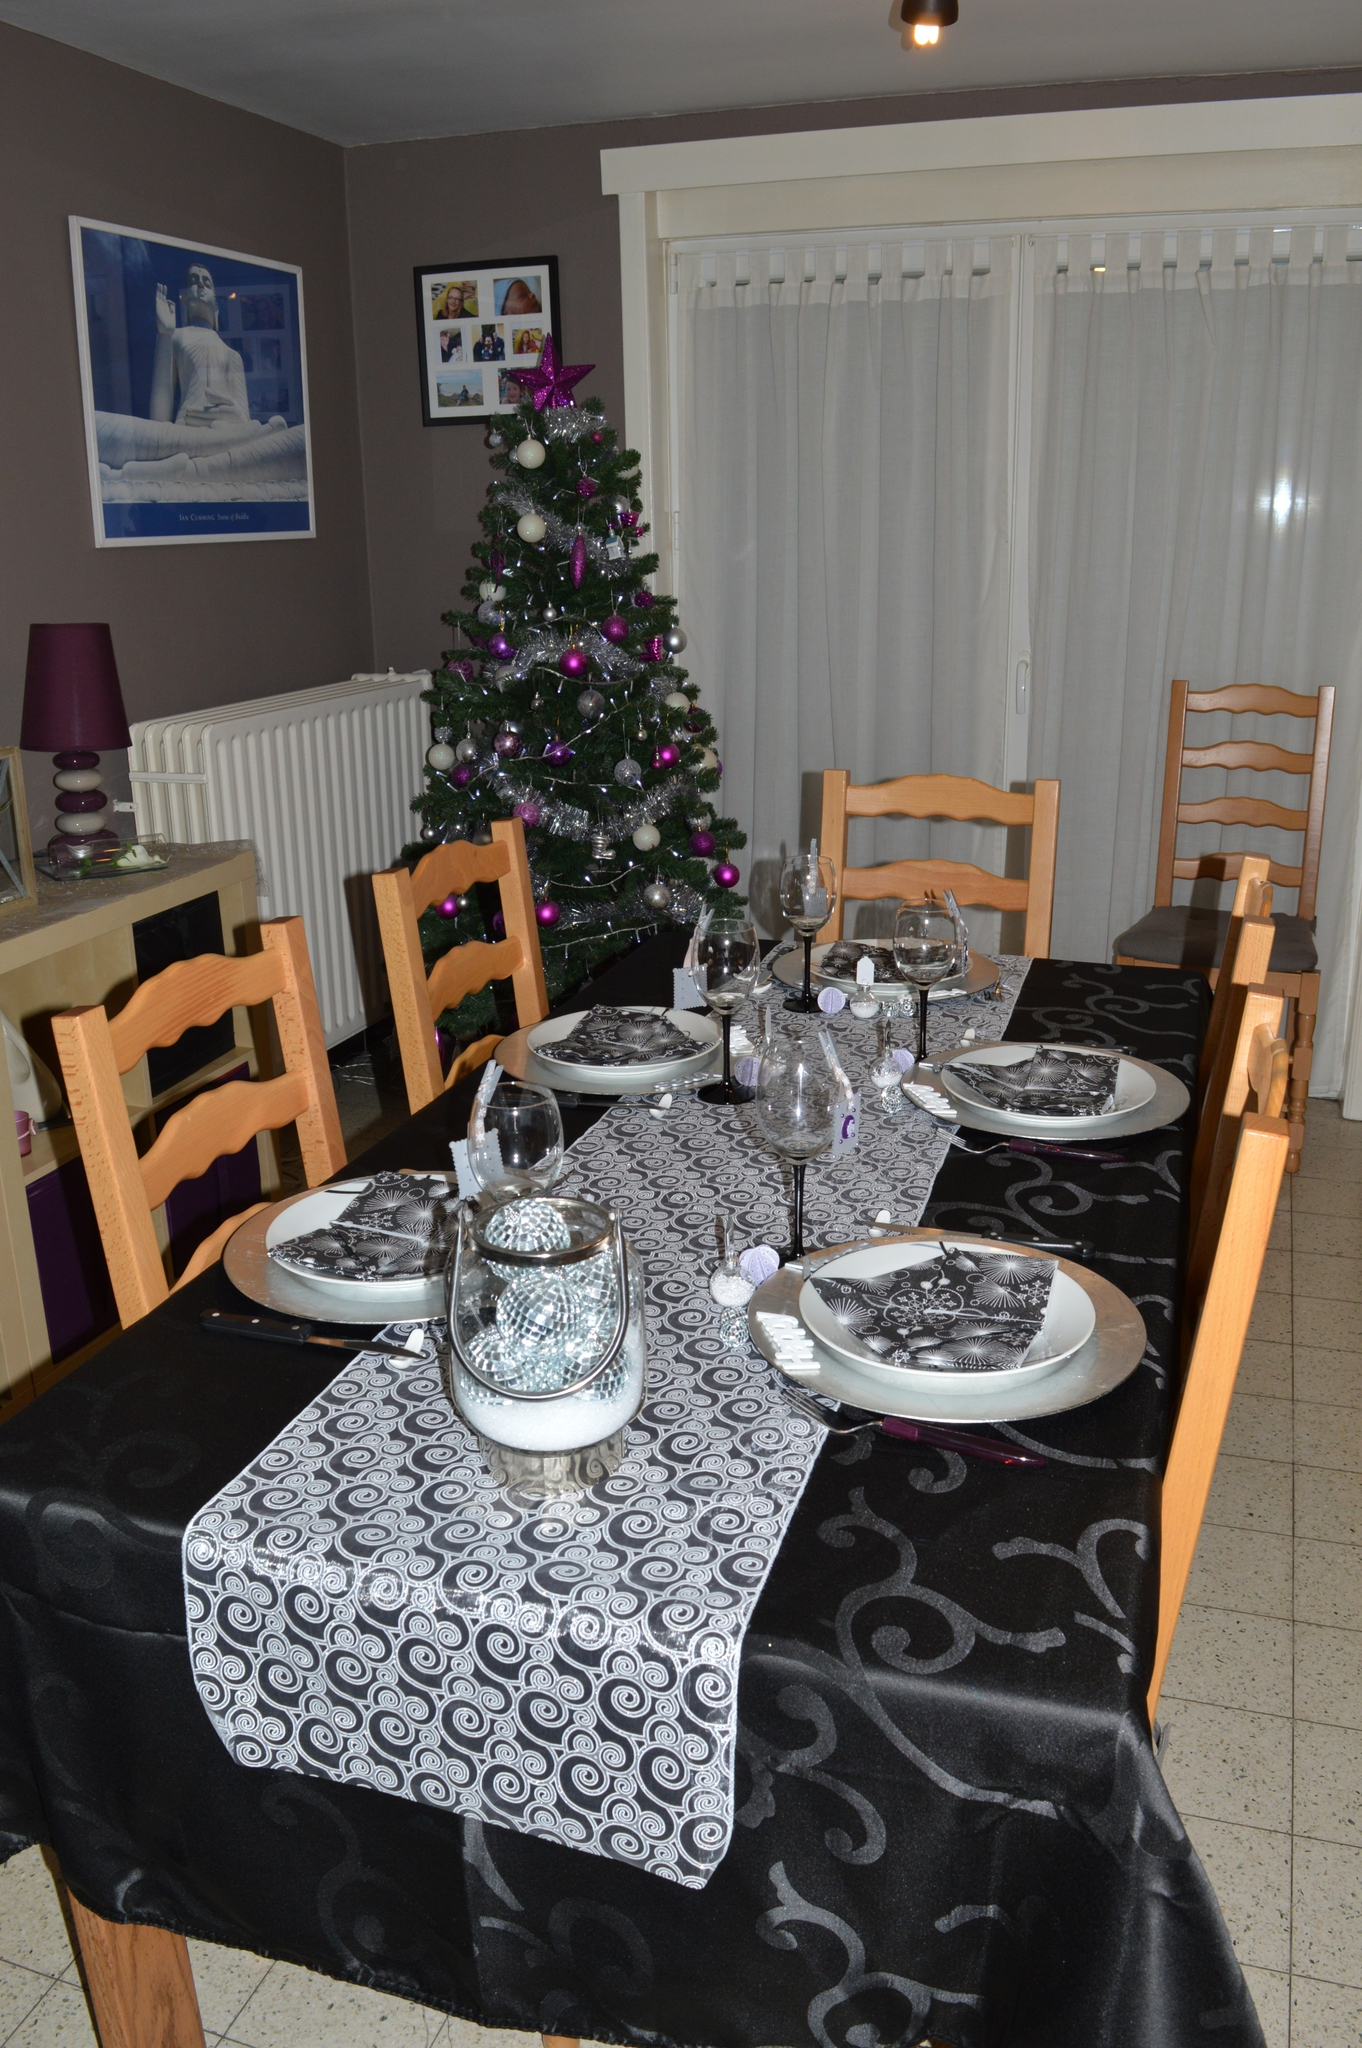 Décoration de table du nouvel an